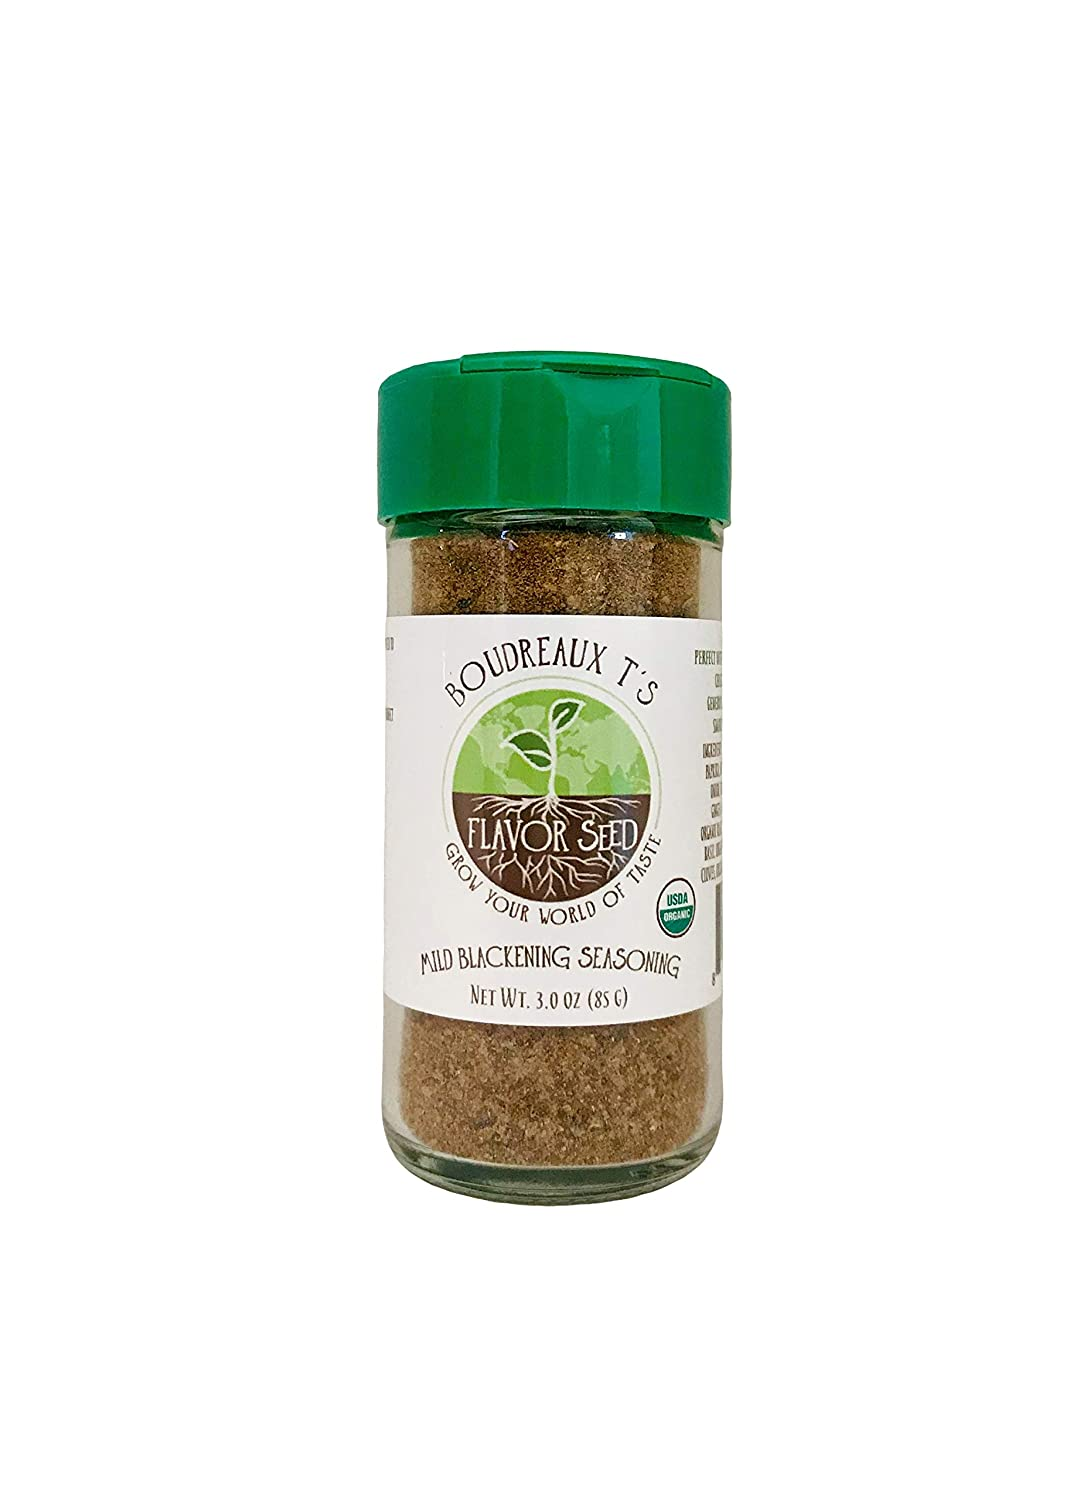 FLAVOR SEED - Boudreaux T's Organic Mild Blackening Seasoning|Keto, Paleo, Non-GMO, Gluten Free|Great for Blackened Seafood, Salmon, Tuna, Redfish, Chicken Wings, Vegetables, Burgers|Magic Not Spicy